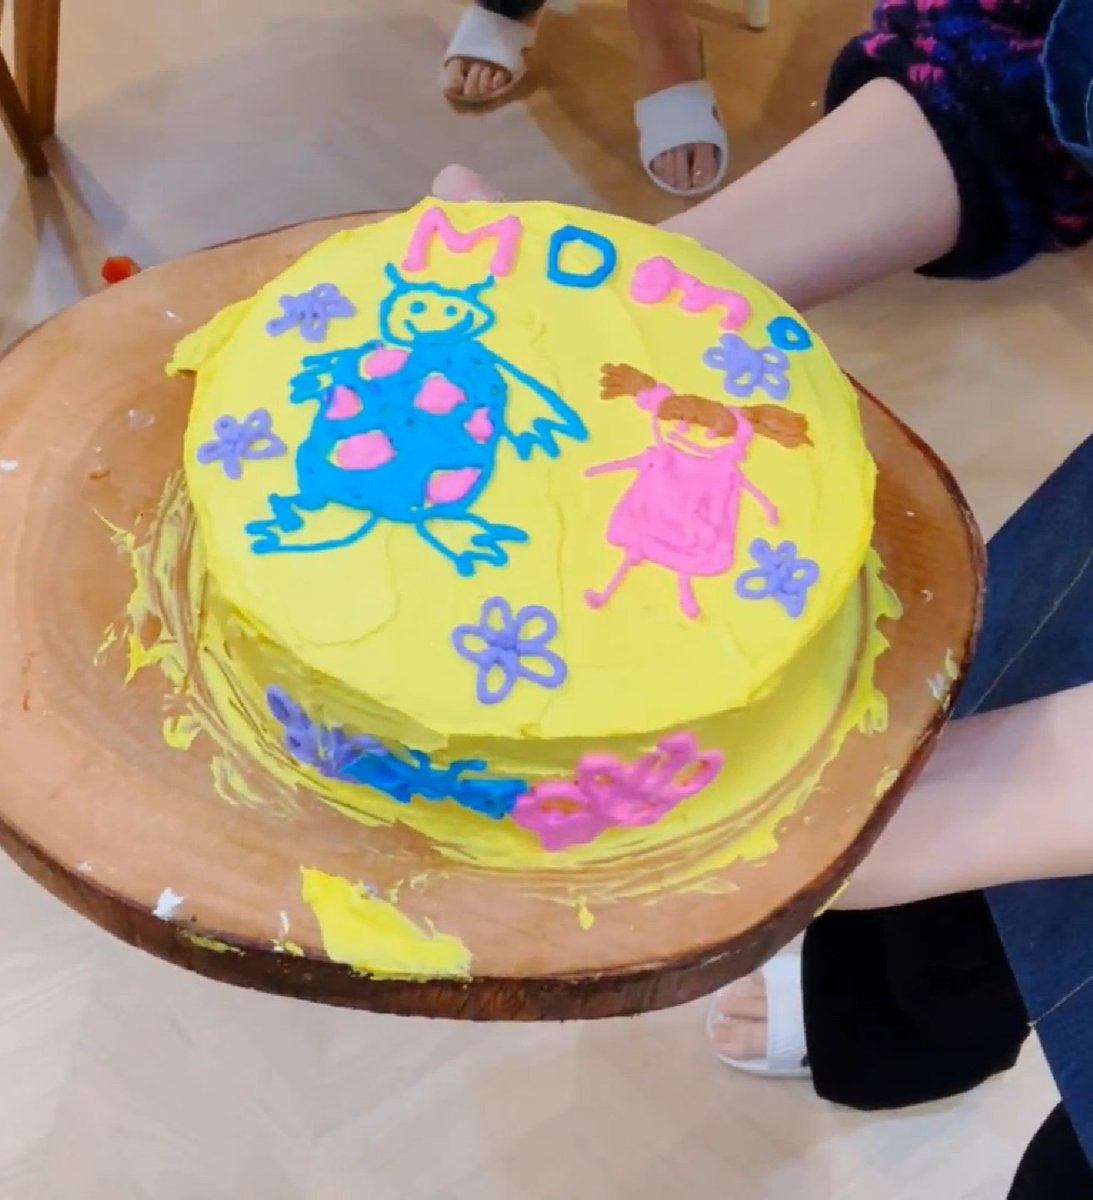 The cake decorated by Momo   Sully, Boo with Momo's name #HappyMOMOday #모모야생일축하해<br>http://pic.twitter.com/mQ0W79Ug25